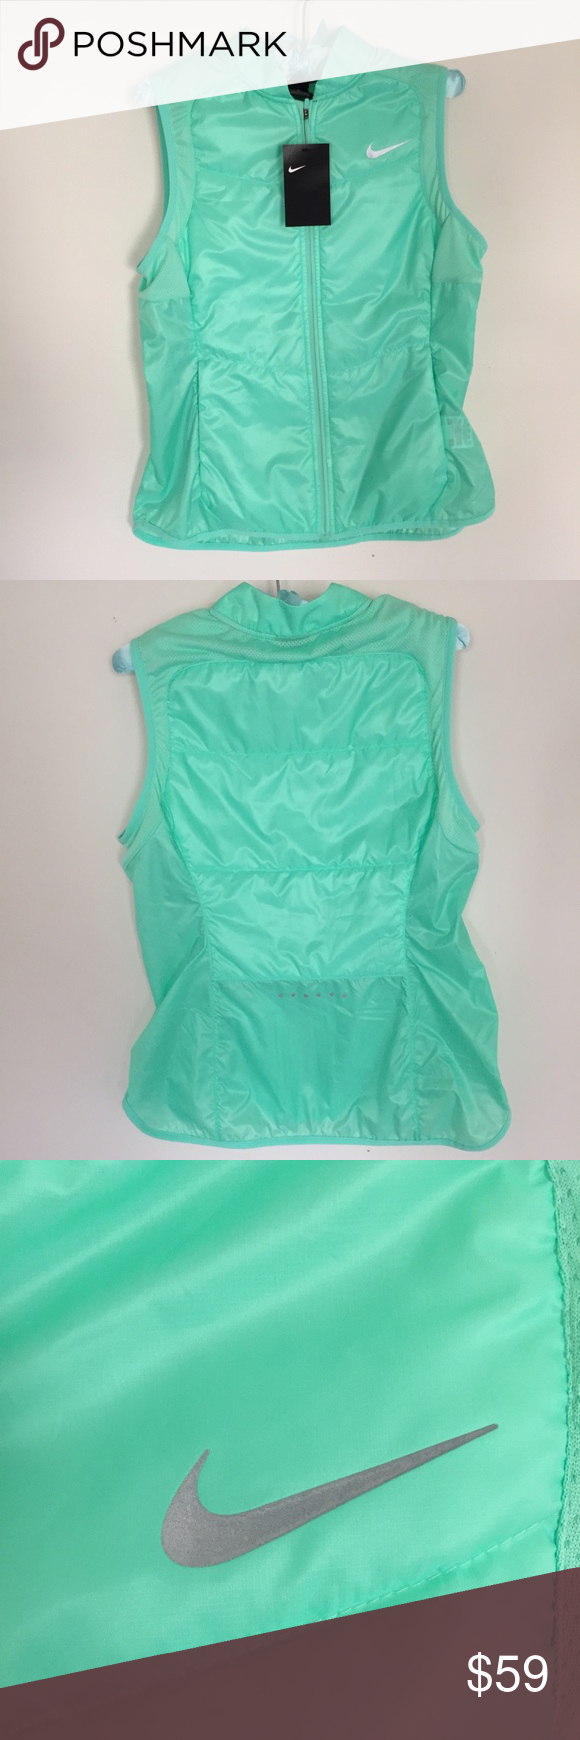 0e78ba0cd89a3 Nike Reflective Polyfill Vest New with tag ✨ light teal color, lightweight  & perfect for spring as well as chilly summer nights 🔸 details 🔸  reflective ...